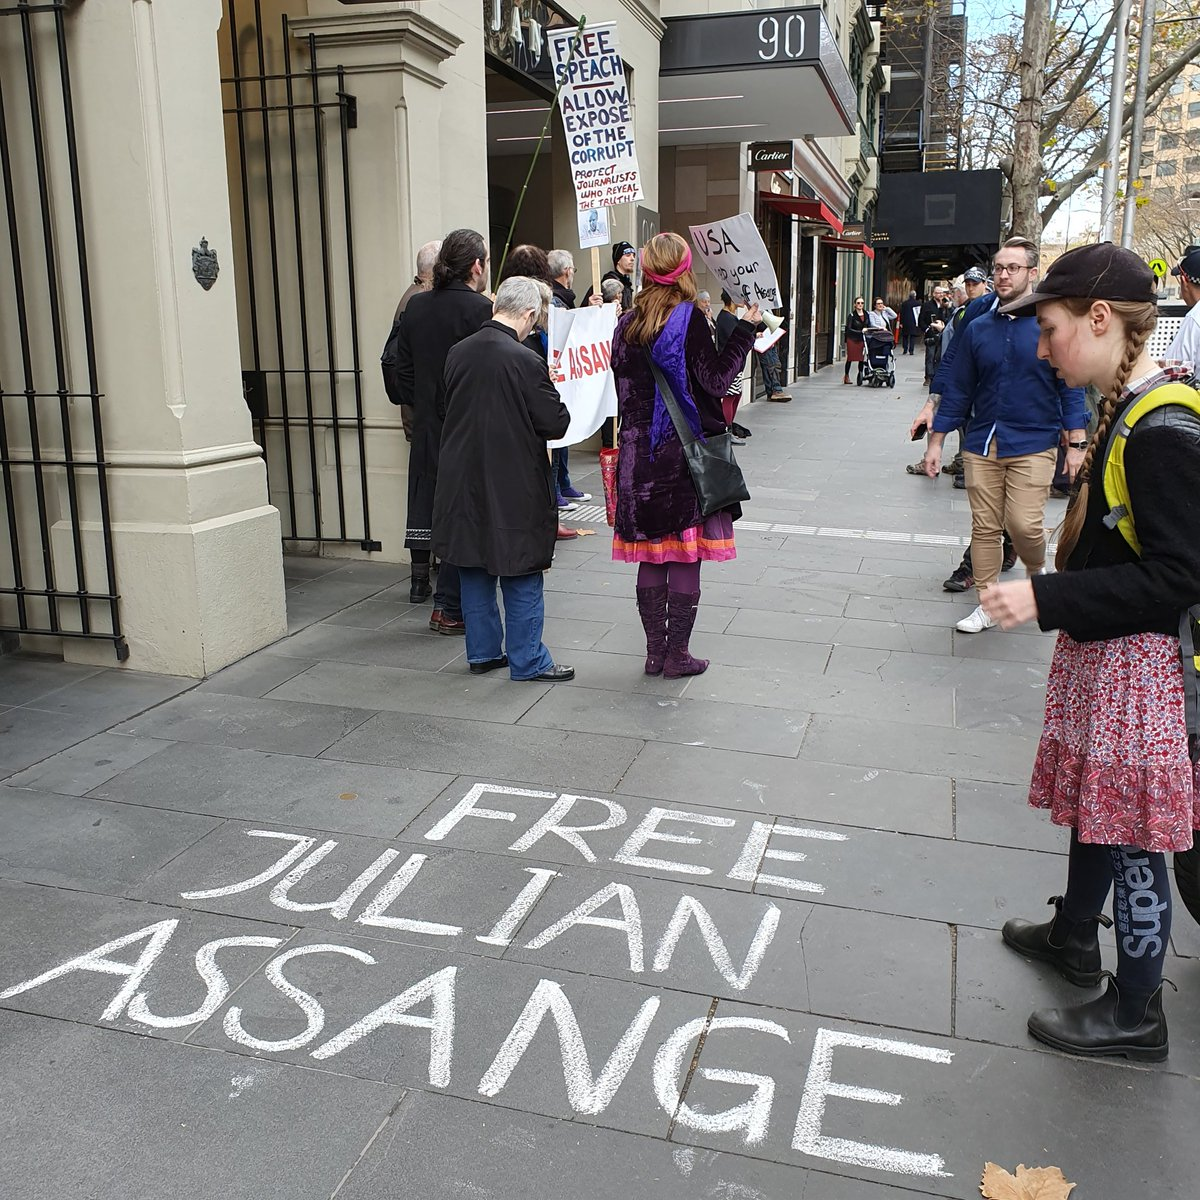 Free Julian Assange Now. Melbourne comes out in support of Julian Assange at UK Consulate, Melbourne #FreeAssange @johnpilger @wikileaks <br>http://pic.twitter.com/JsP4XZIj5J